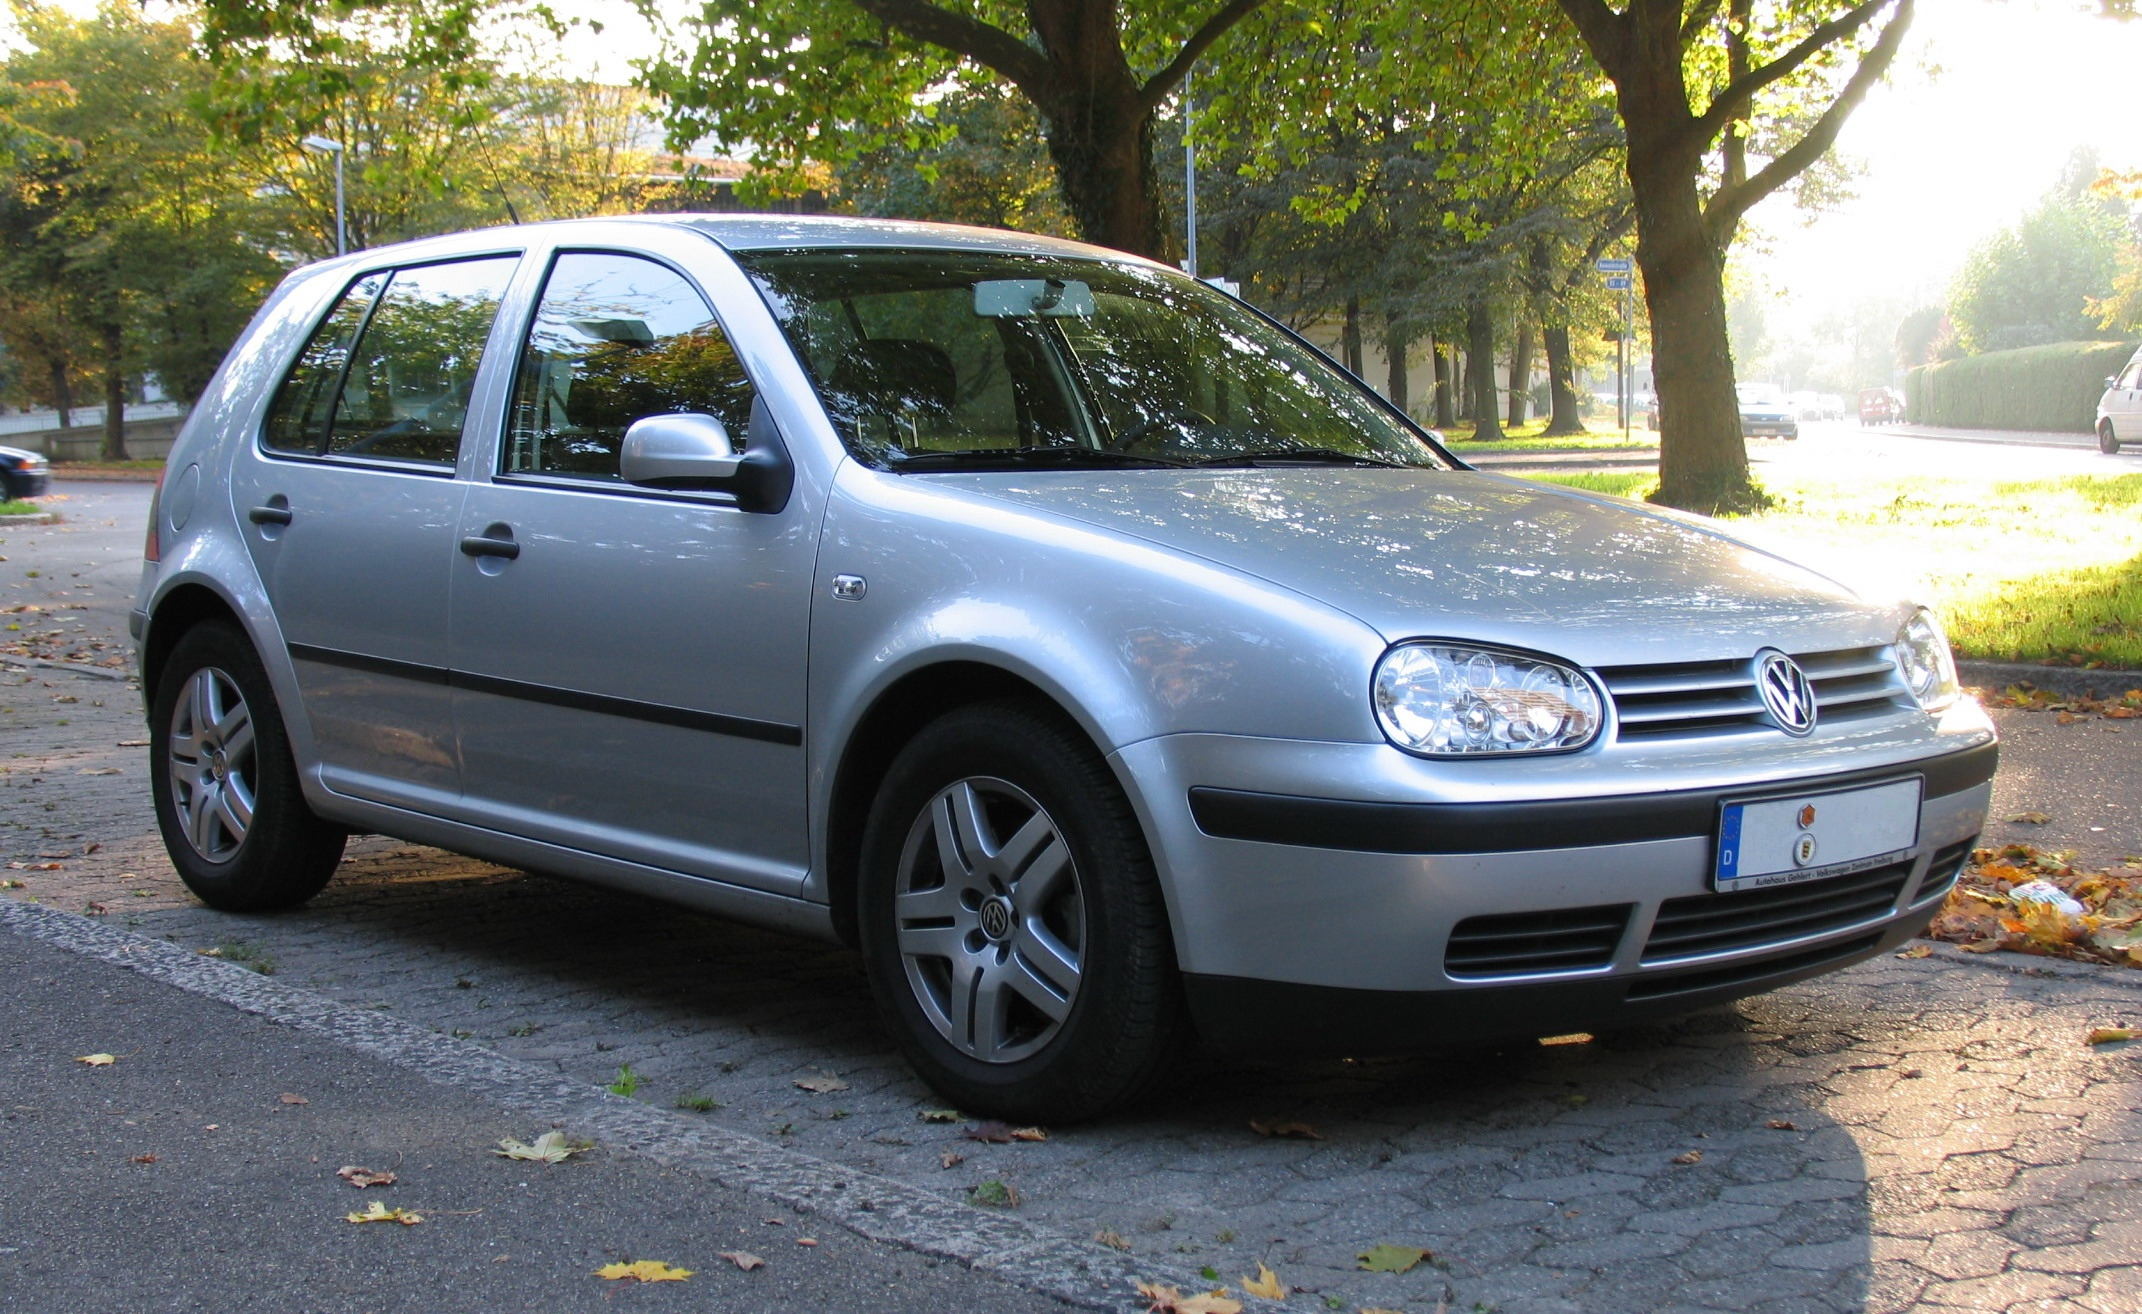 vw golf 4 technical details history photos on better. Black Bedroom Furniture Sets. Home Design Ideas